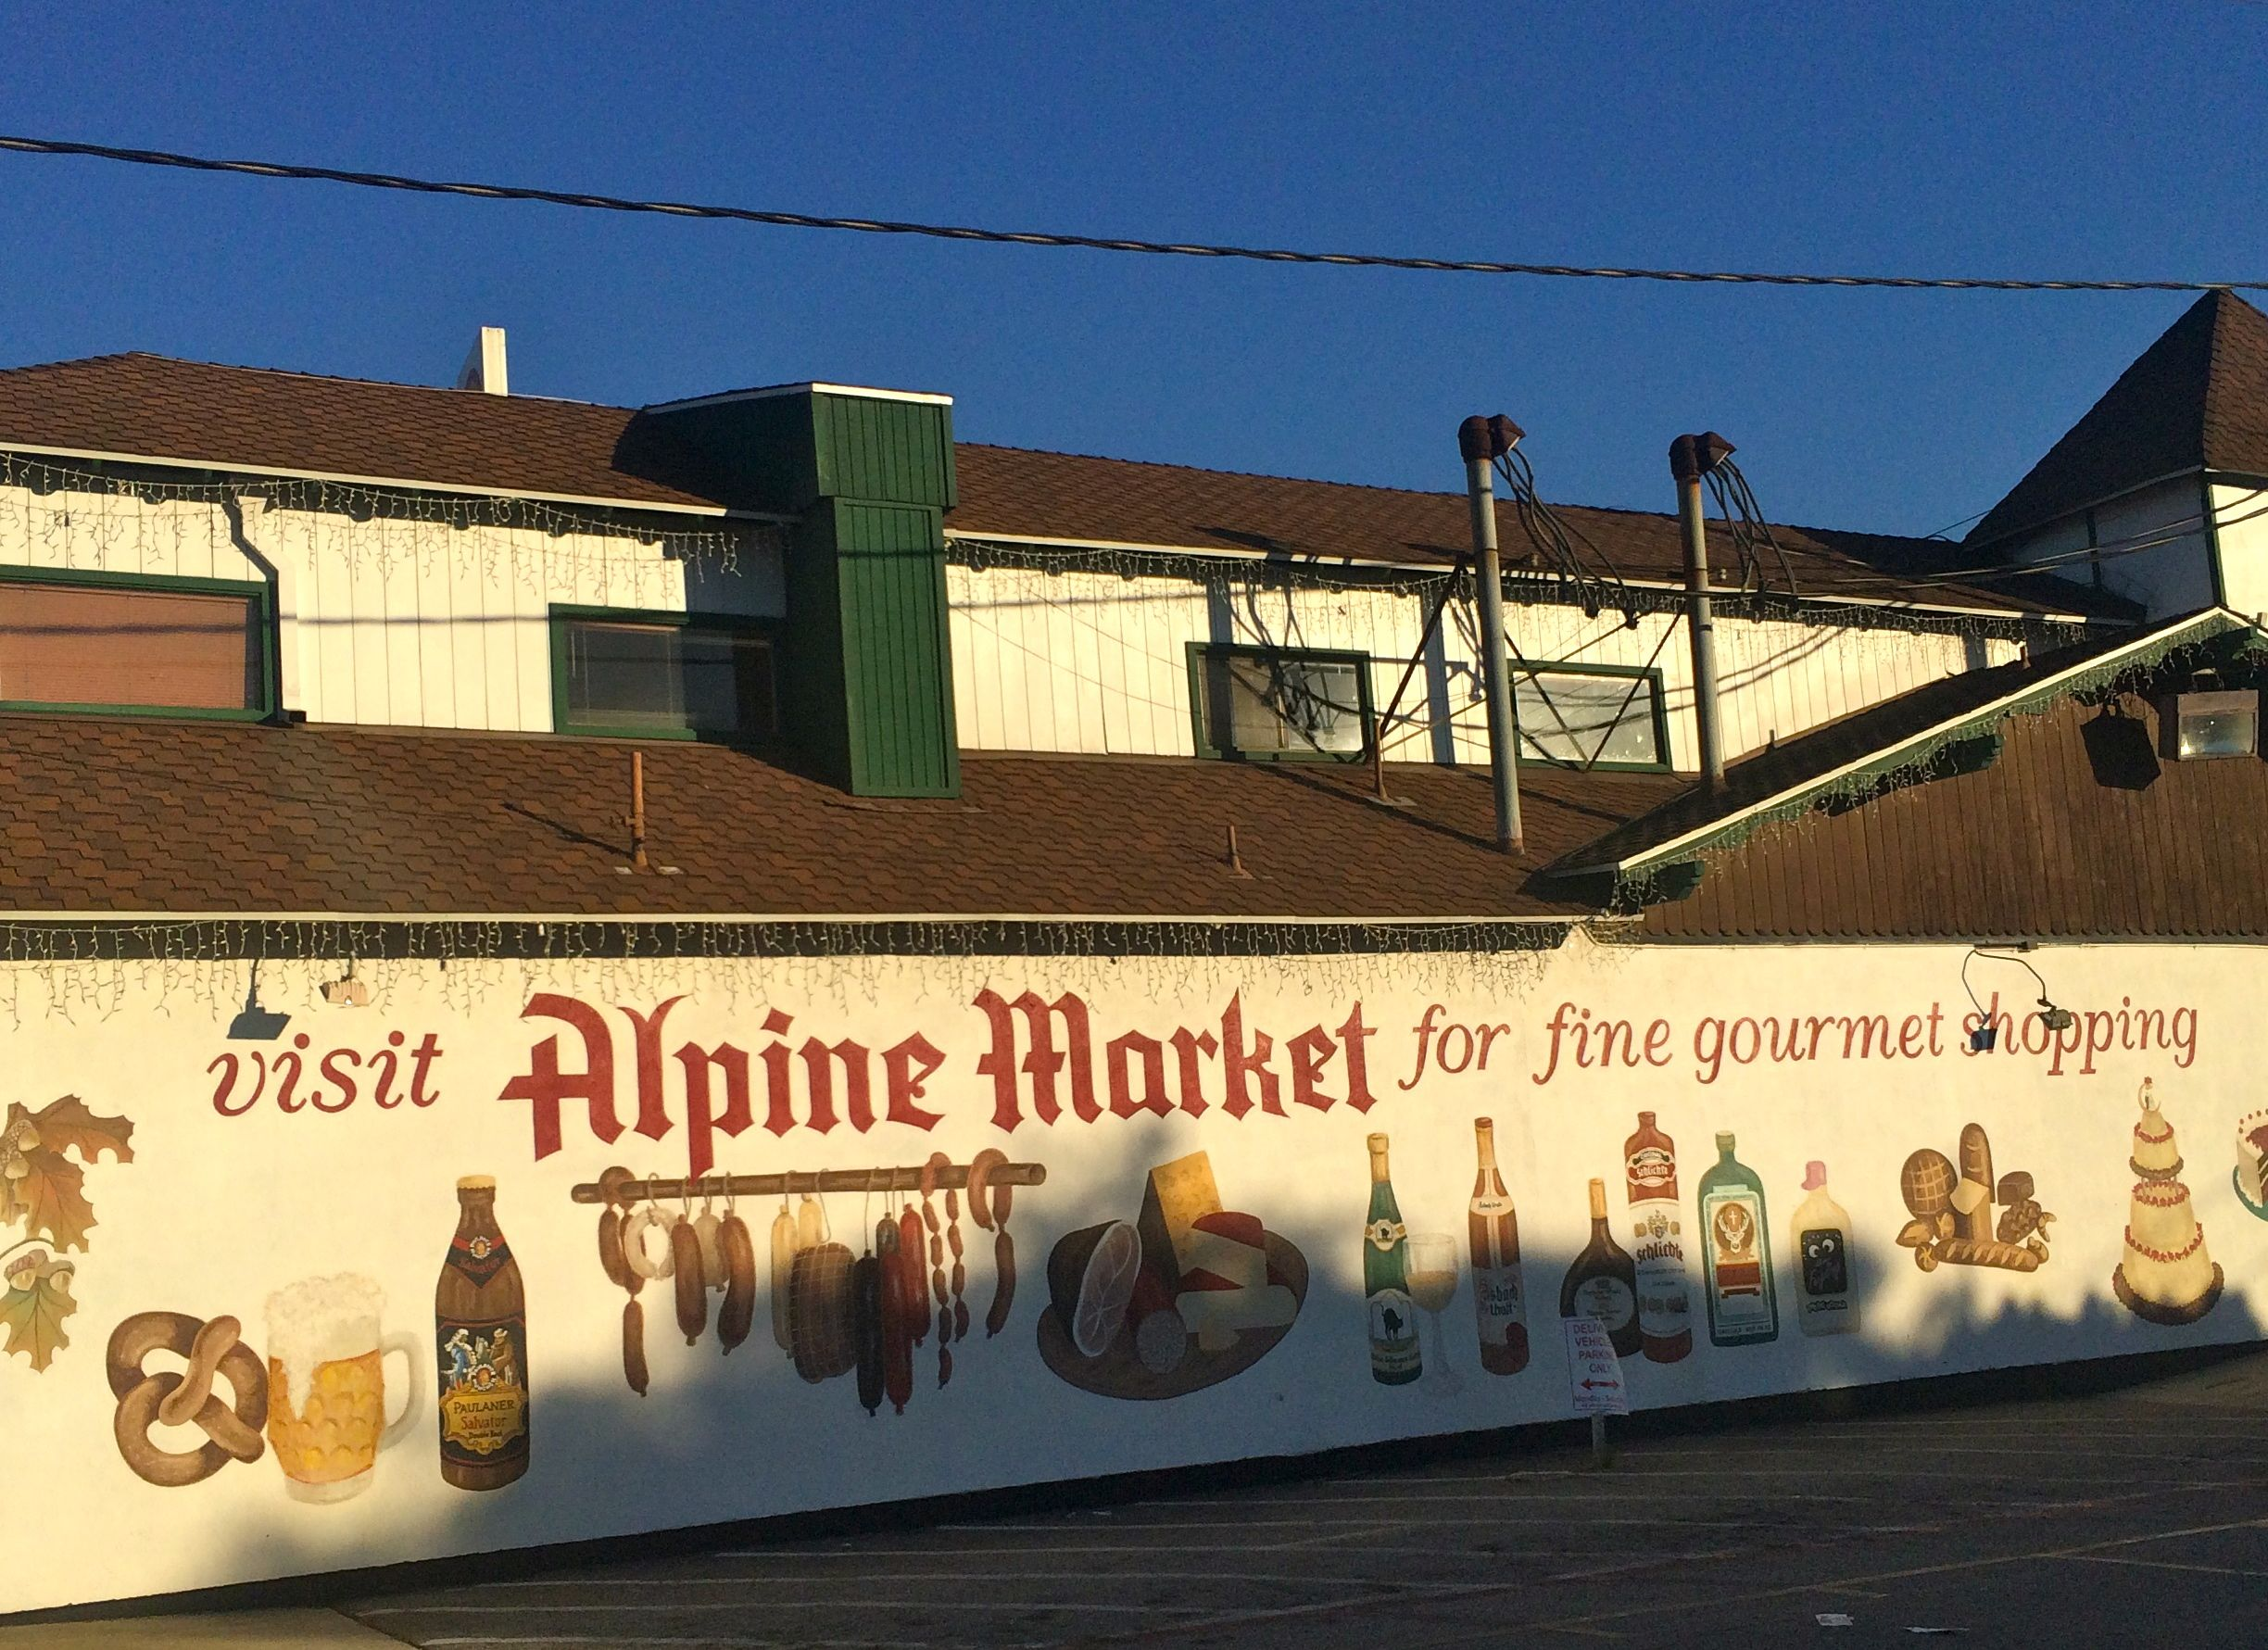 The Alpine Village in Torrance (photo by Nikki Kreuzer)